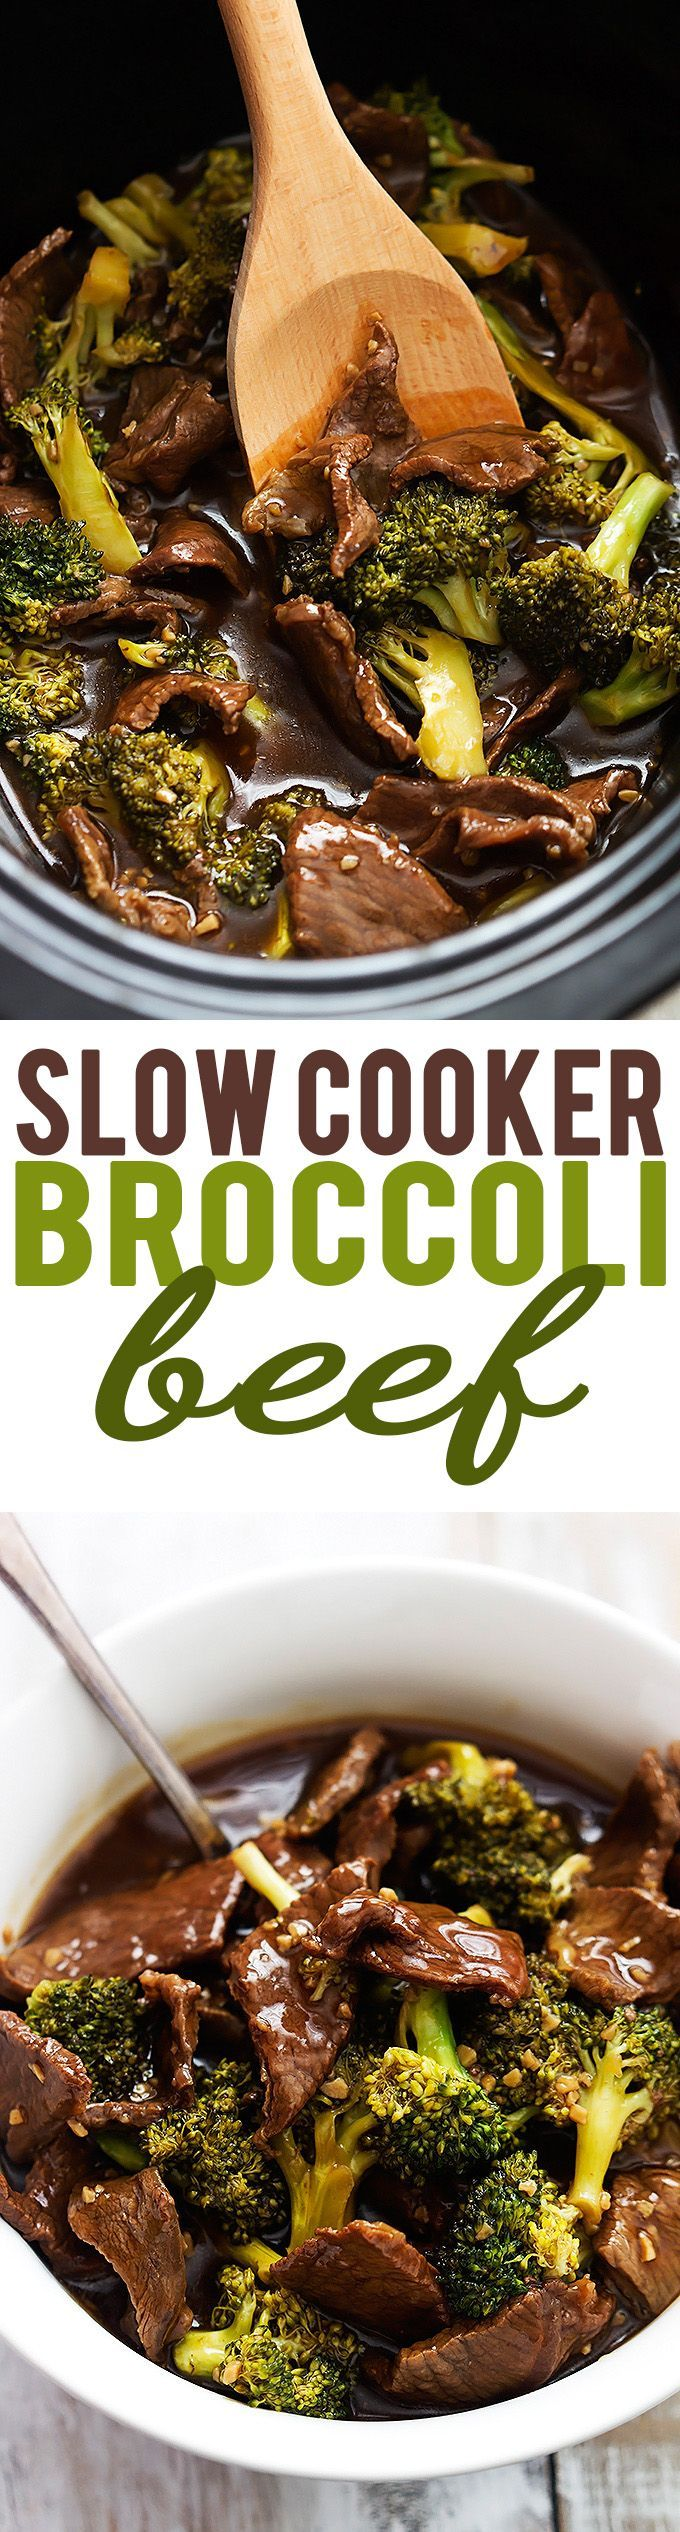 Super easy Slow Cooker Broccoli Beef! The sauce is AMAZING – so much better tasting and healthier than takeout! | Creme de la Crumb